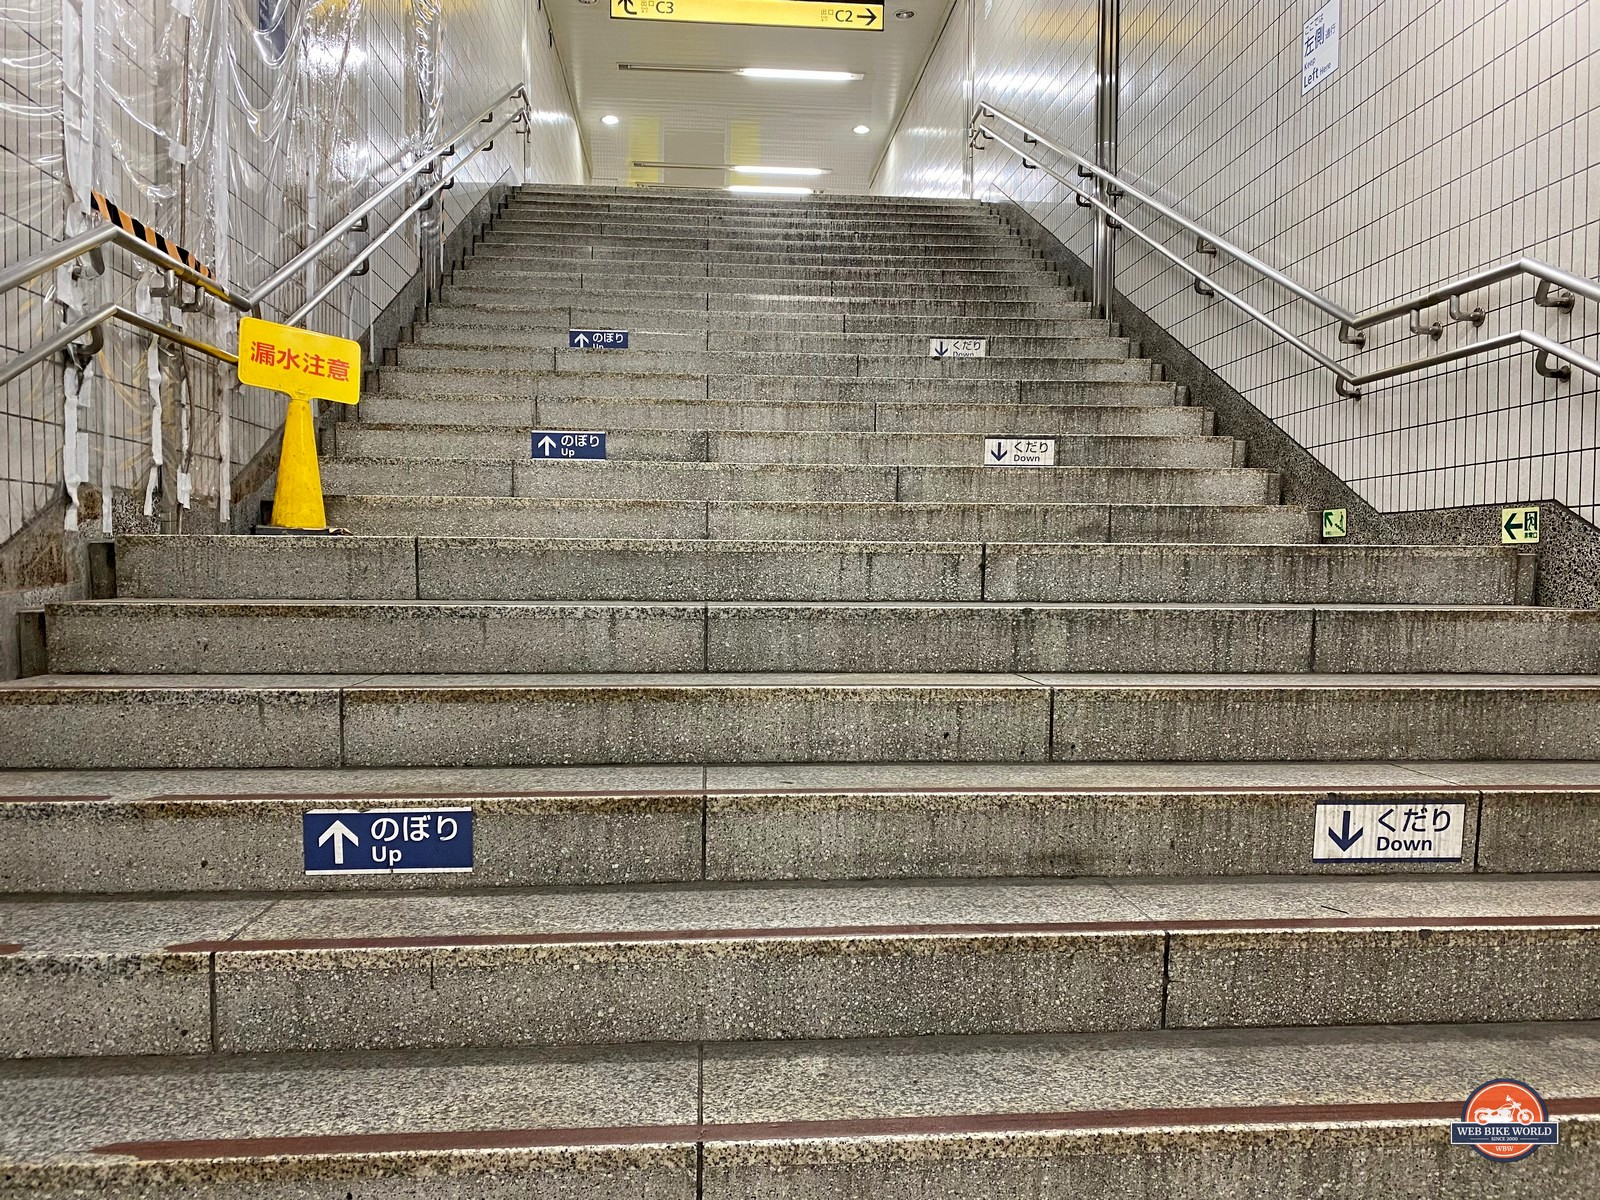 Sidewalks and stairwells are marked to guide you going up or down aiding in efficiency.